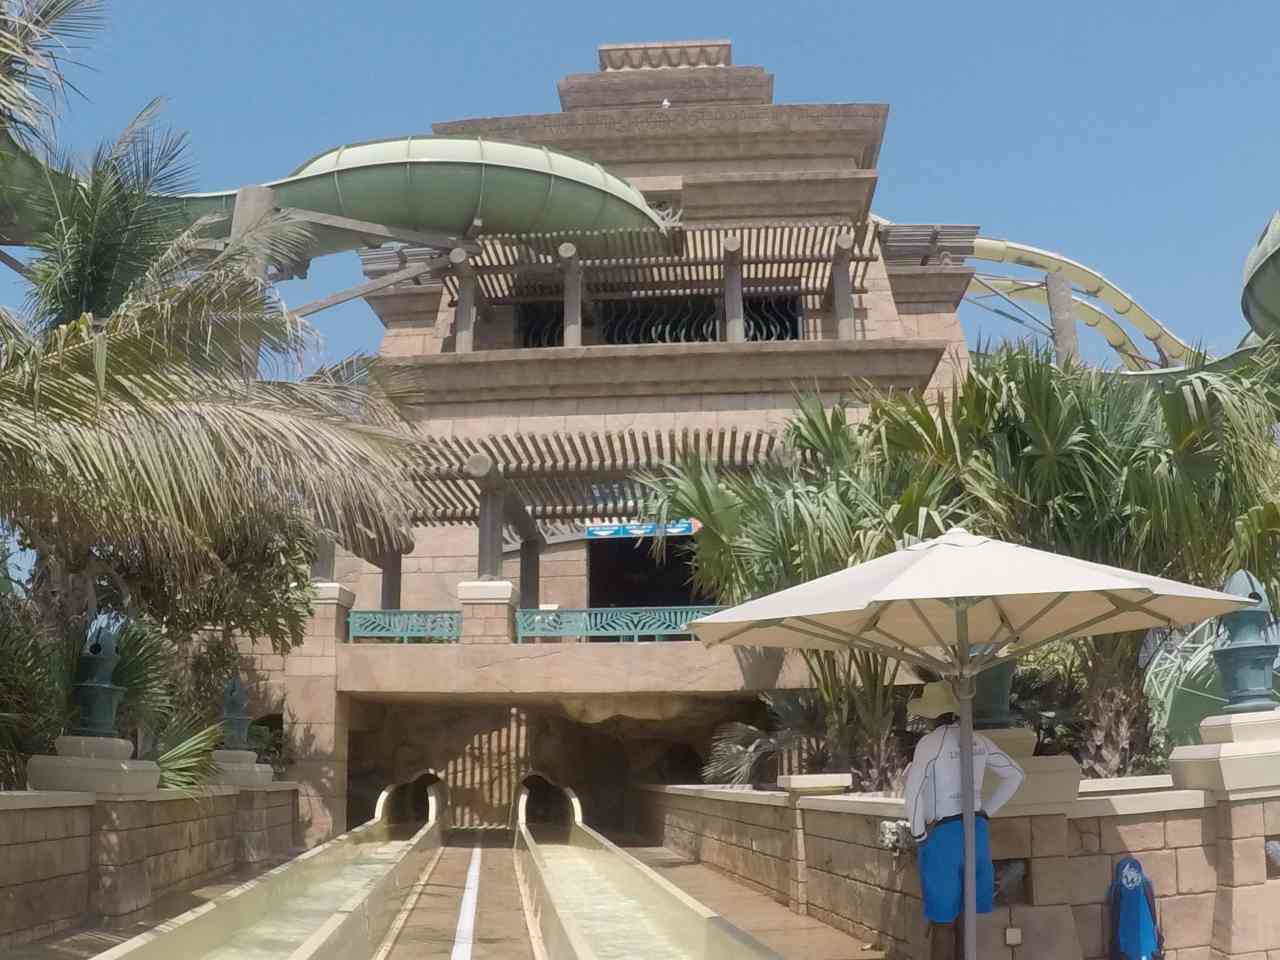 Aquaventure waterpark Atlantis Dubai Poseidon's Tower